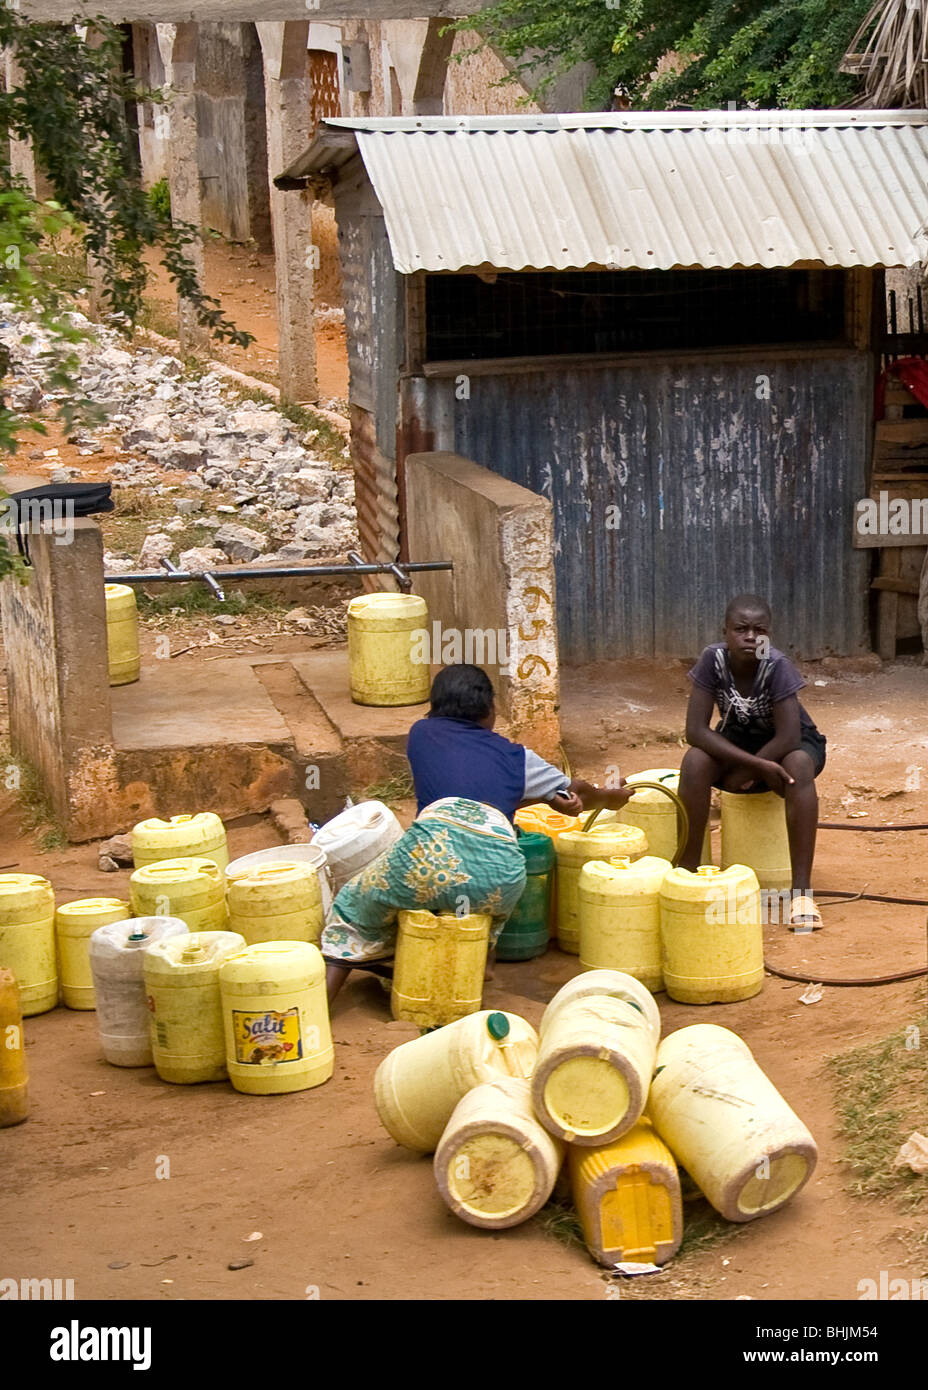 Collecting Water, Mombasa, Kenya, Africa - Stock Image